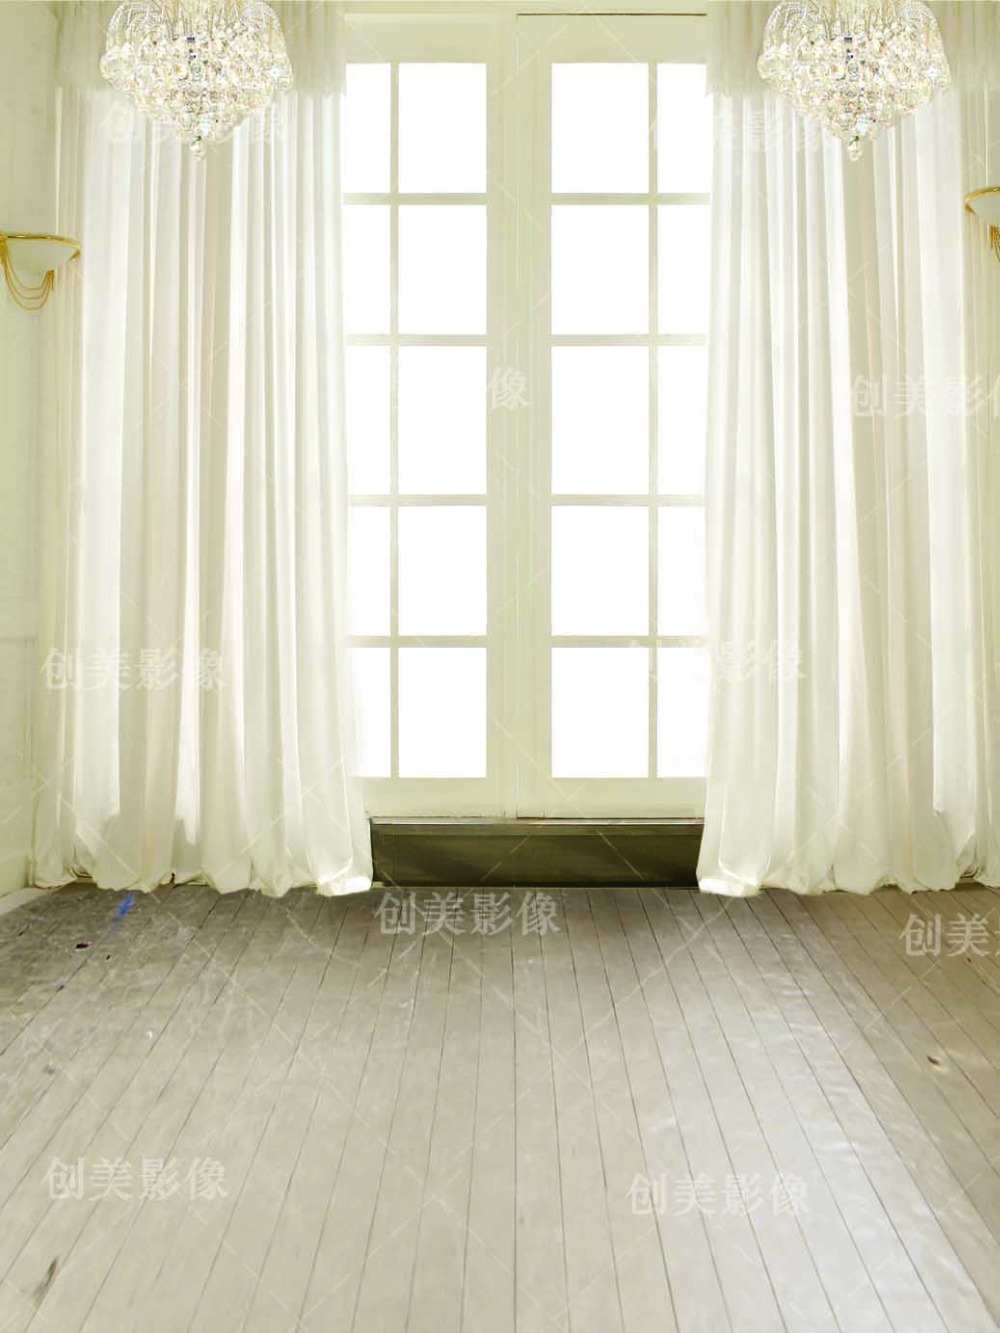 7X10FT  Vinyl cloth Photography Backdrops Sell cheapest price In order to clear the inventory  S-1952